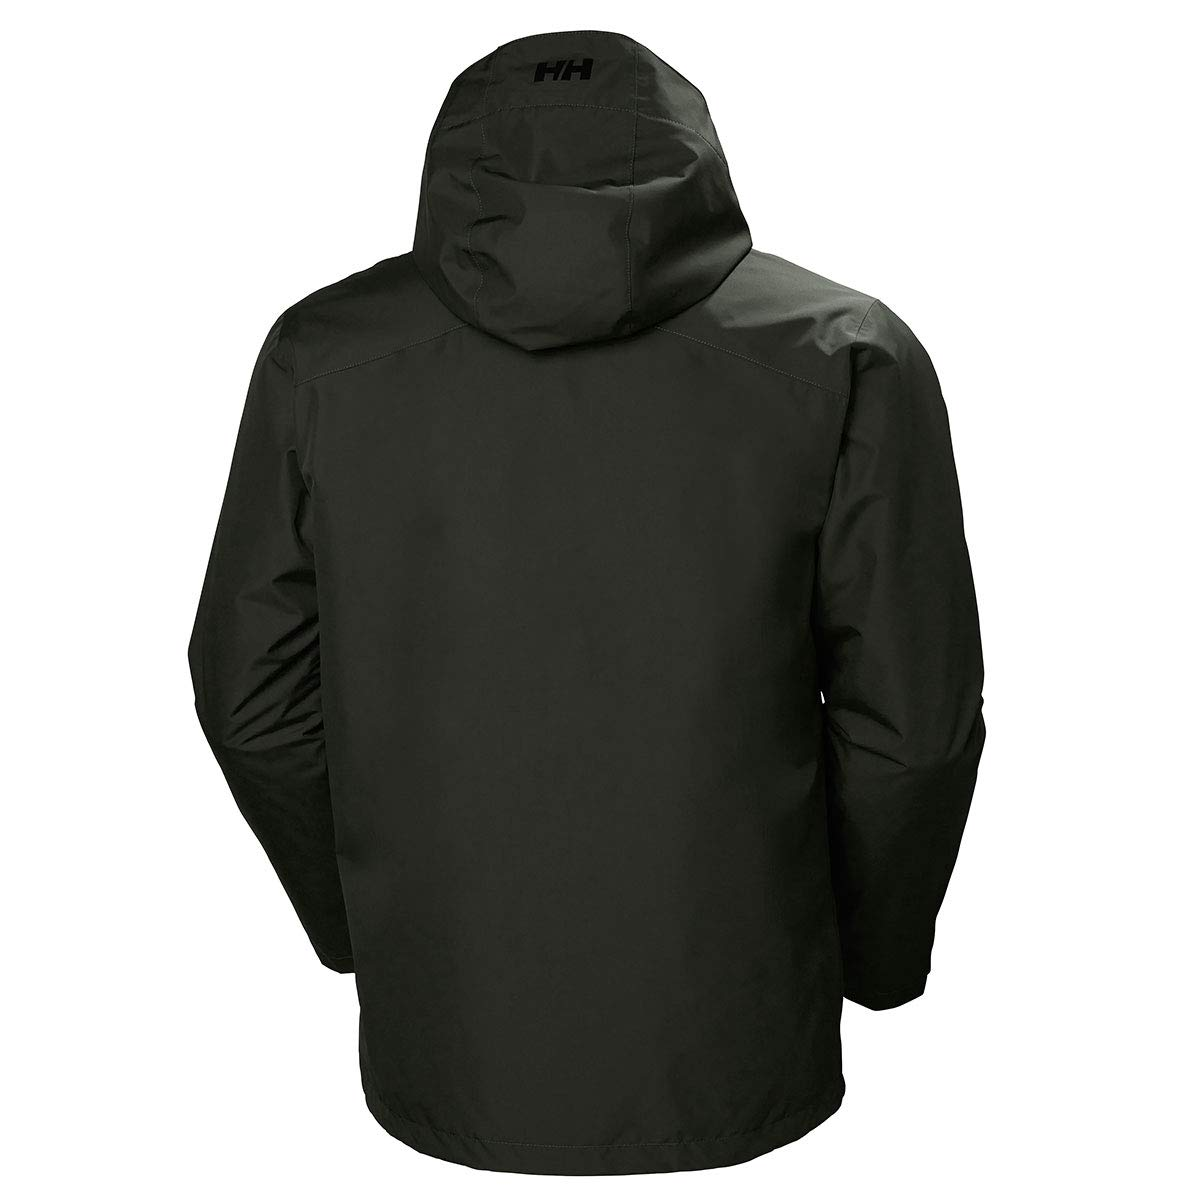 Helly Hansen Squamish 3-in-1 Desmontable /& Aislante Chaqueta Impermeable Hombre